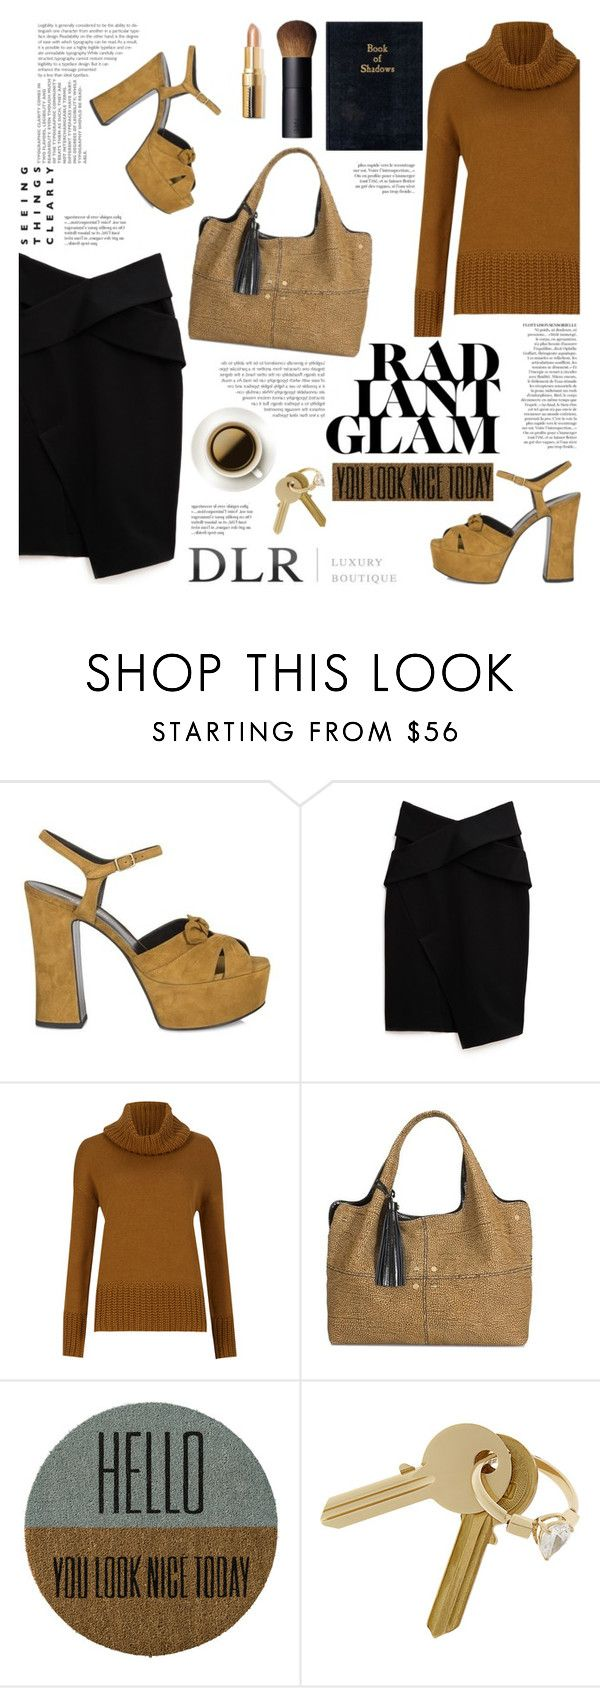 """""""Radiant Glam/DLR Luxury Boutique"""" by helenevlacho ❤ liked on Polyvore featuring Yves Saint Laurent, Josh Goot, M&S Collection, Borbonese, Anja, Bloomingville, Maison Margiela, NARS Cosmetics, Elegant and glam"""